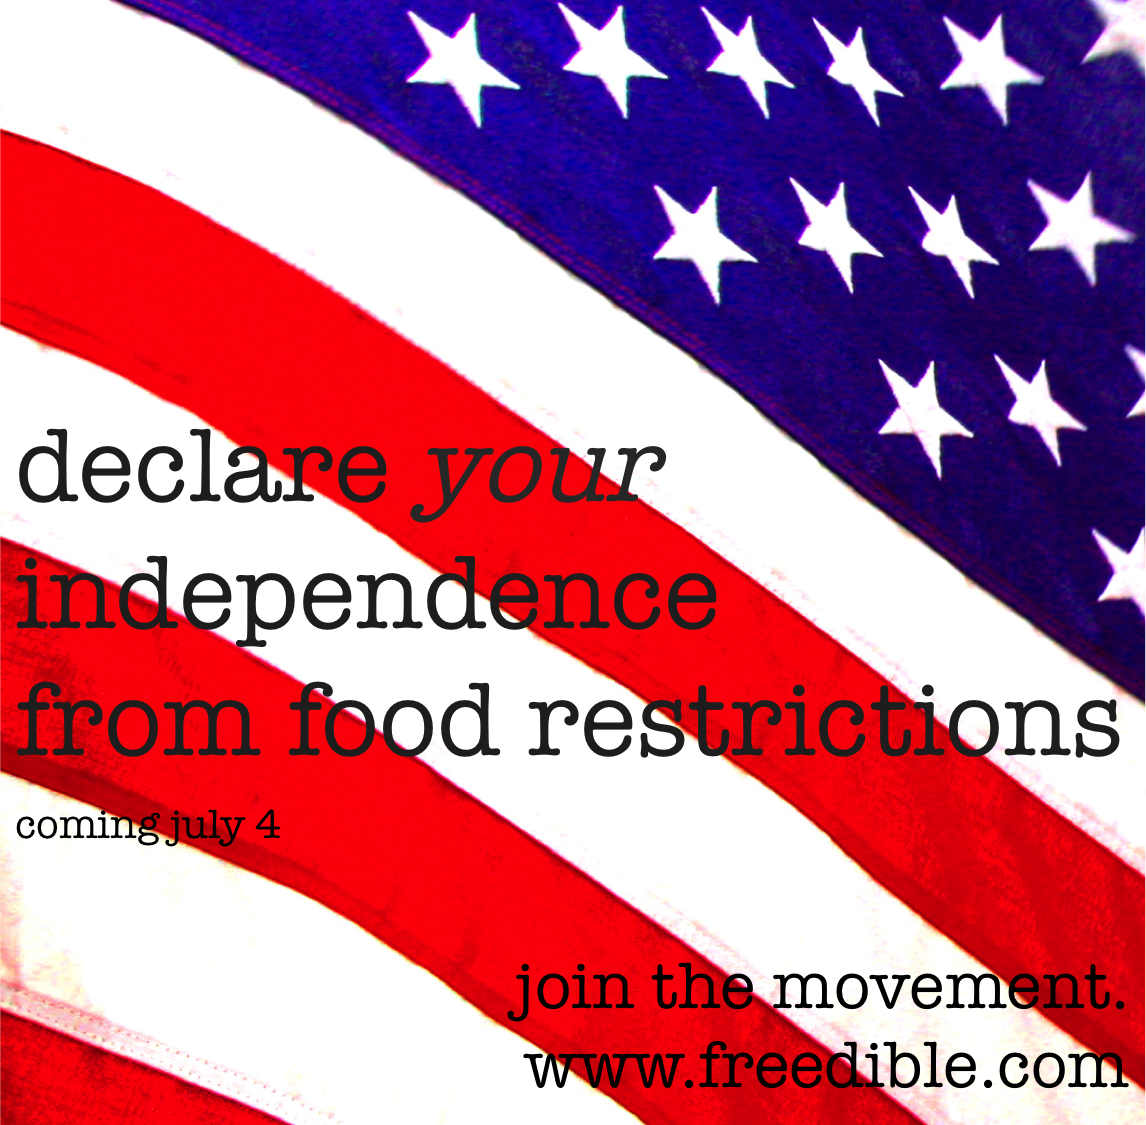 Get Ready to Declare Your Independence from Food Restrictions: freedible news